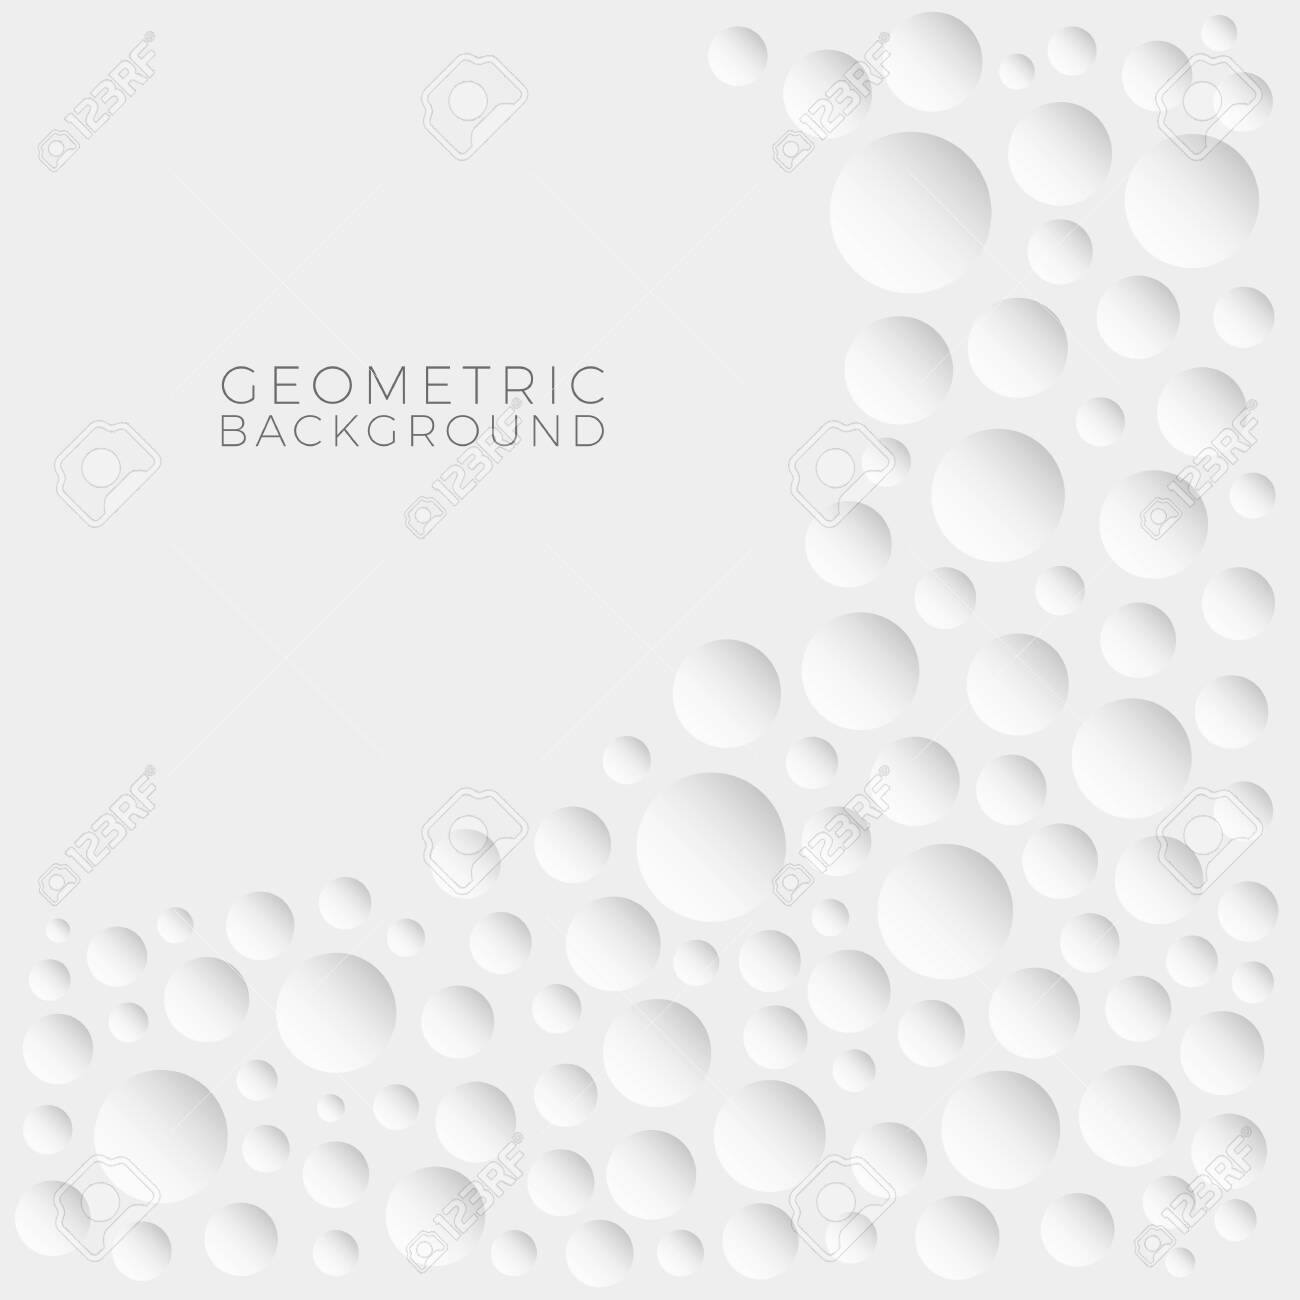 Abstract Modern Geometric Simple Background For All business beauty company with luxury high end look - 122379495